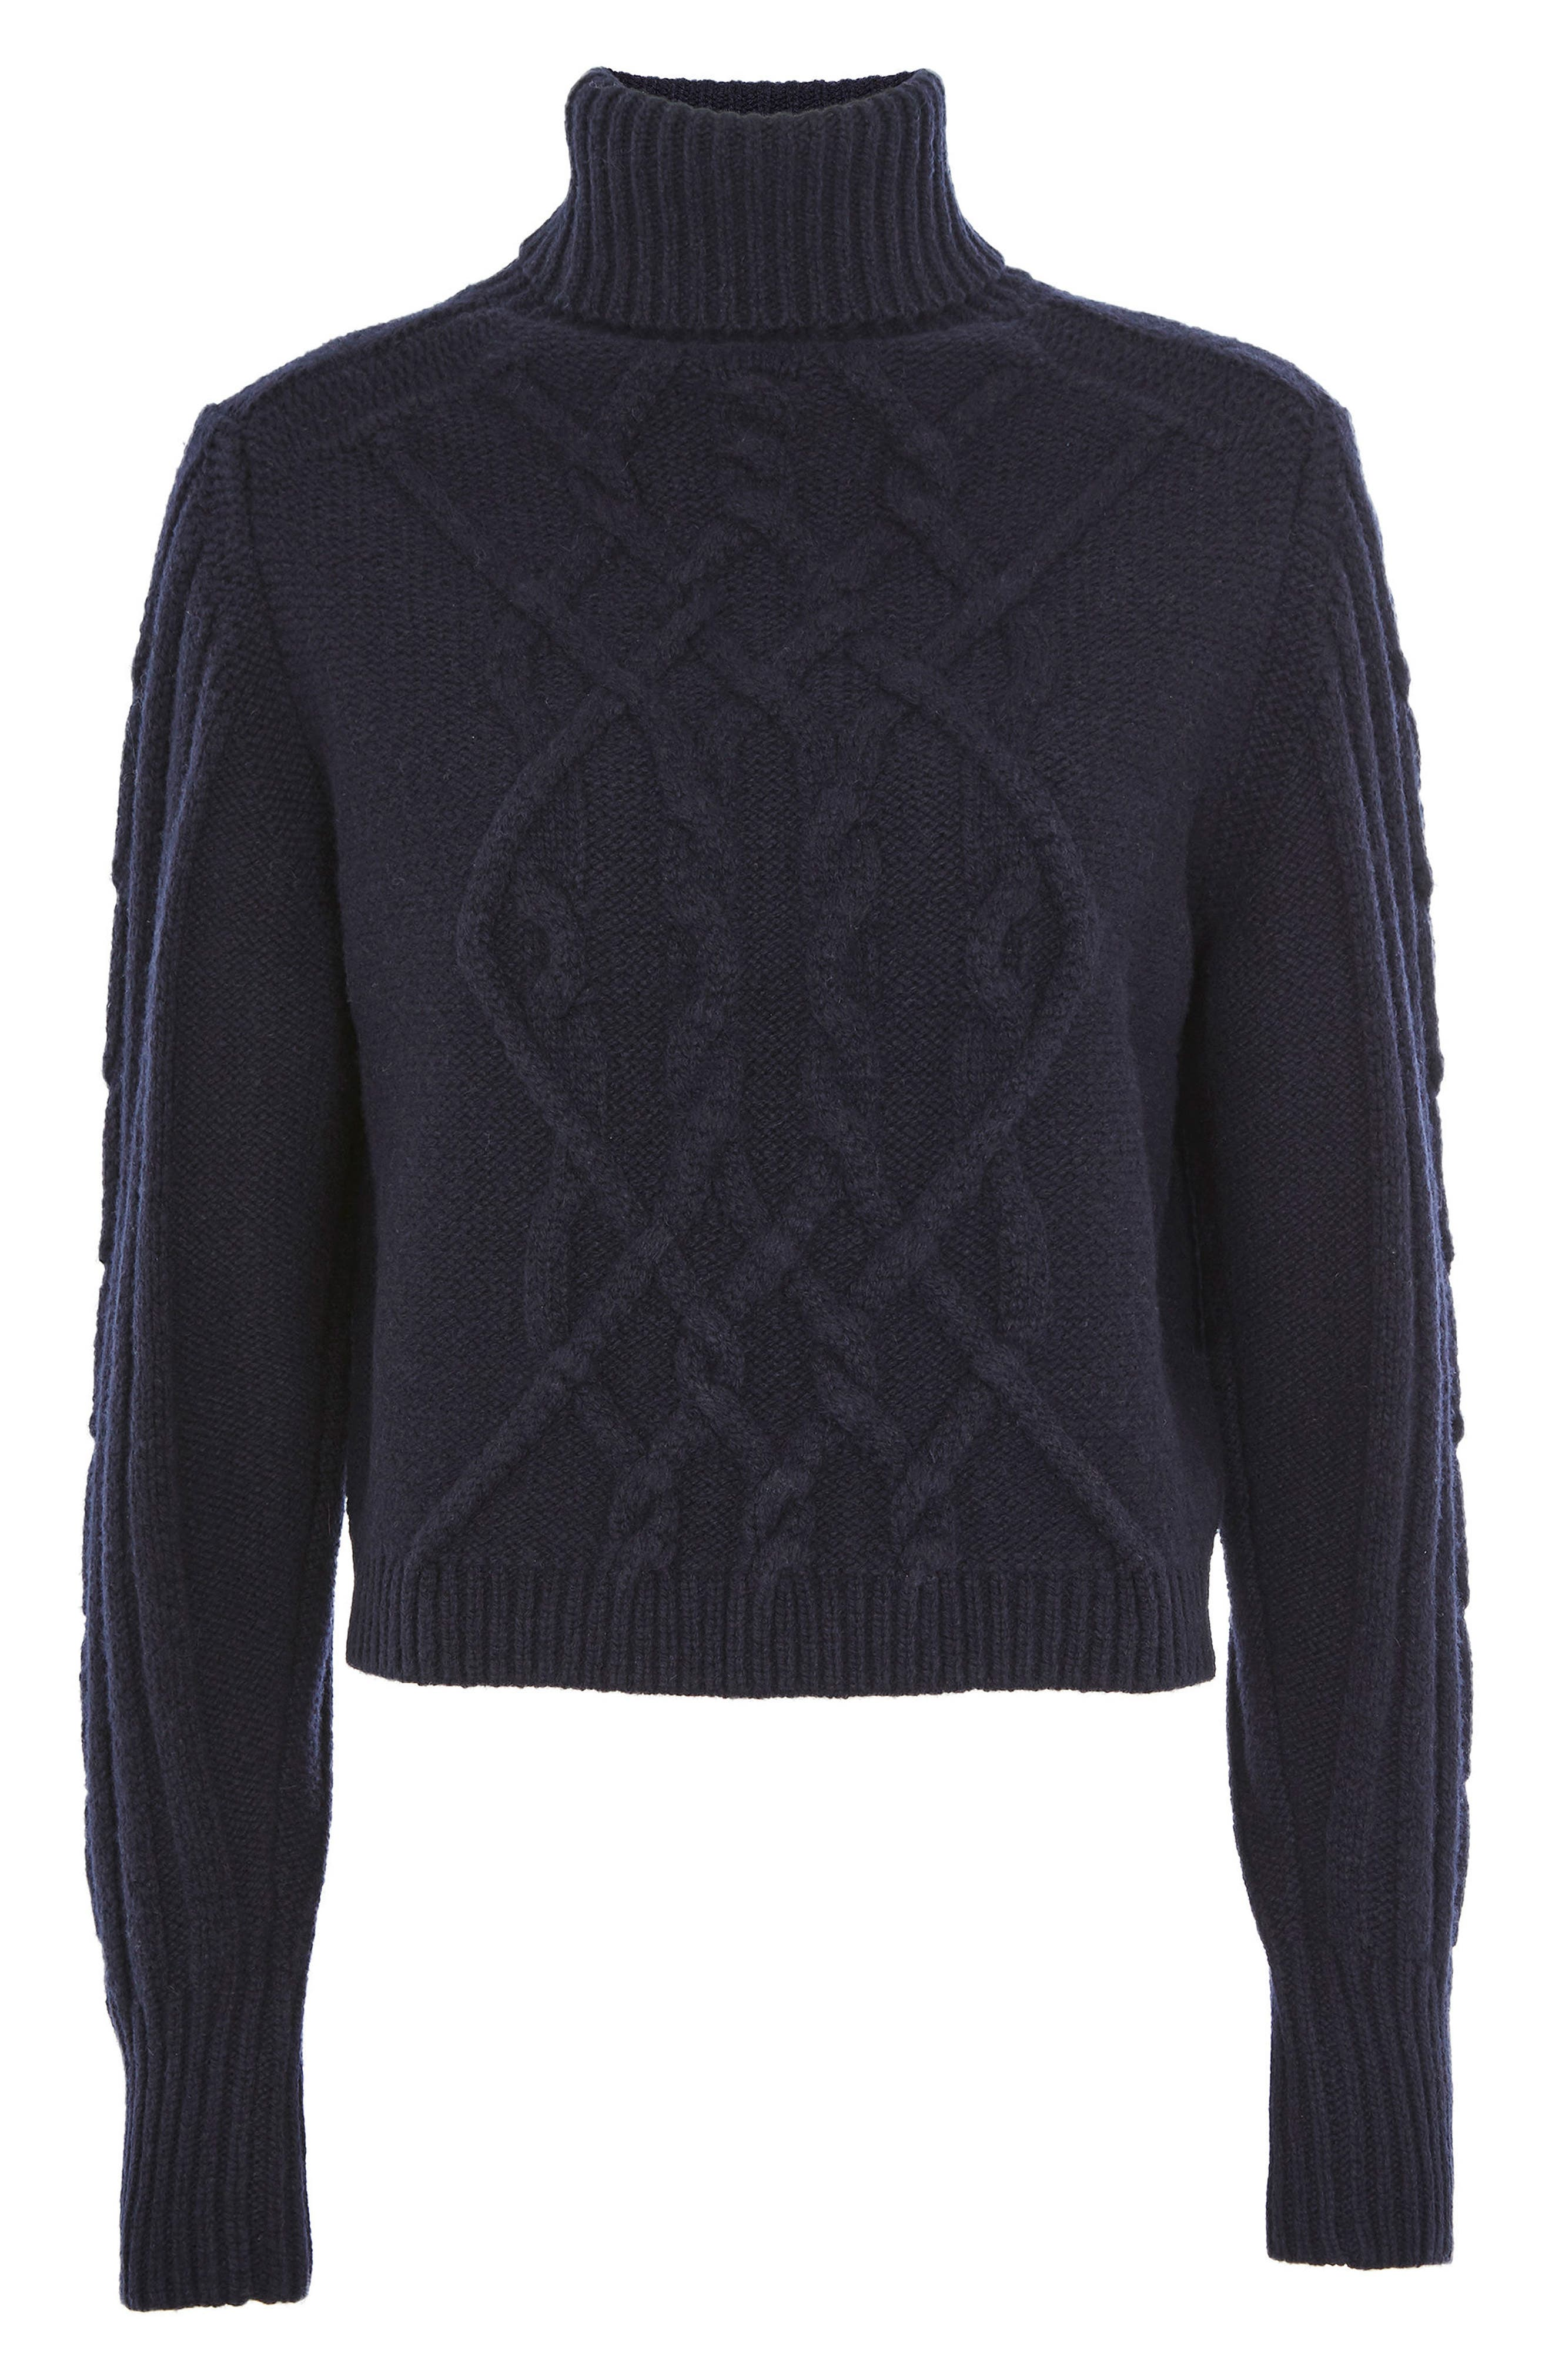 Main Image - Topshop Cable Knit Turtleneck Sweater